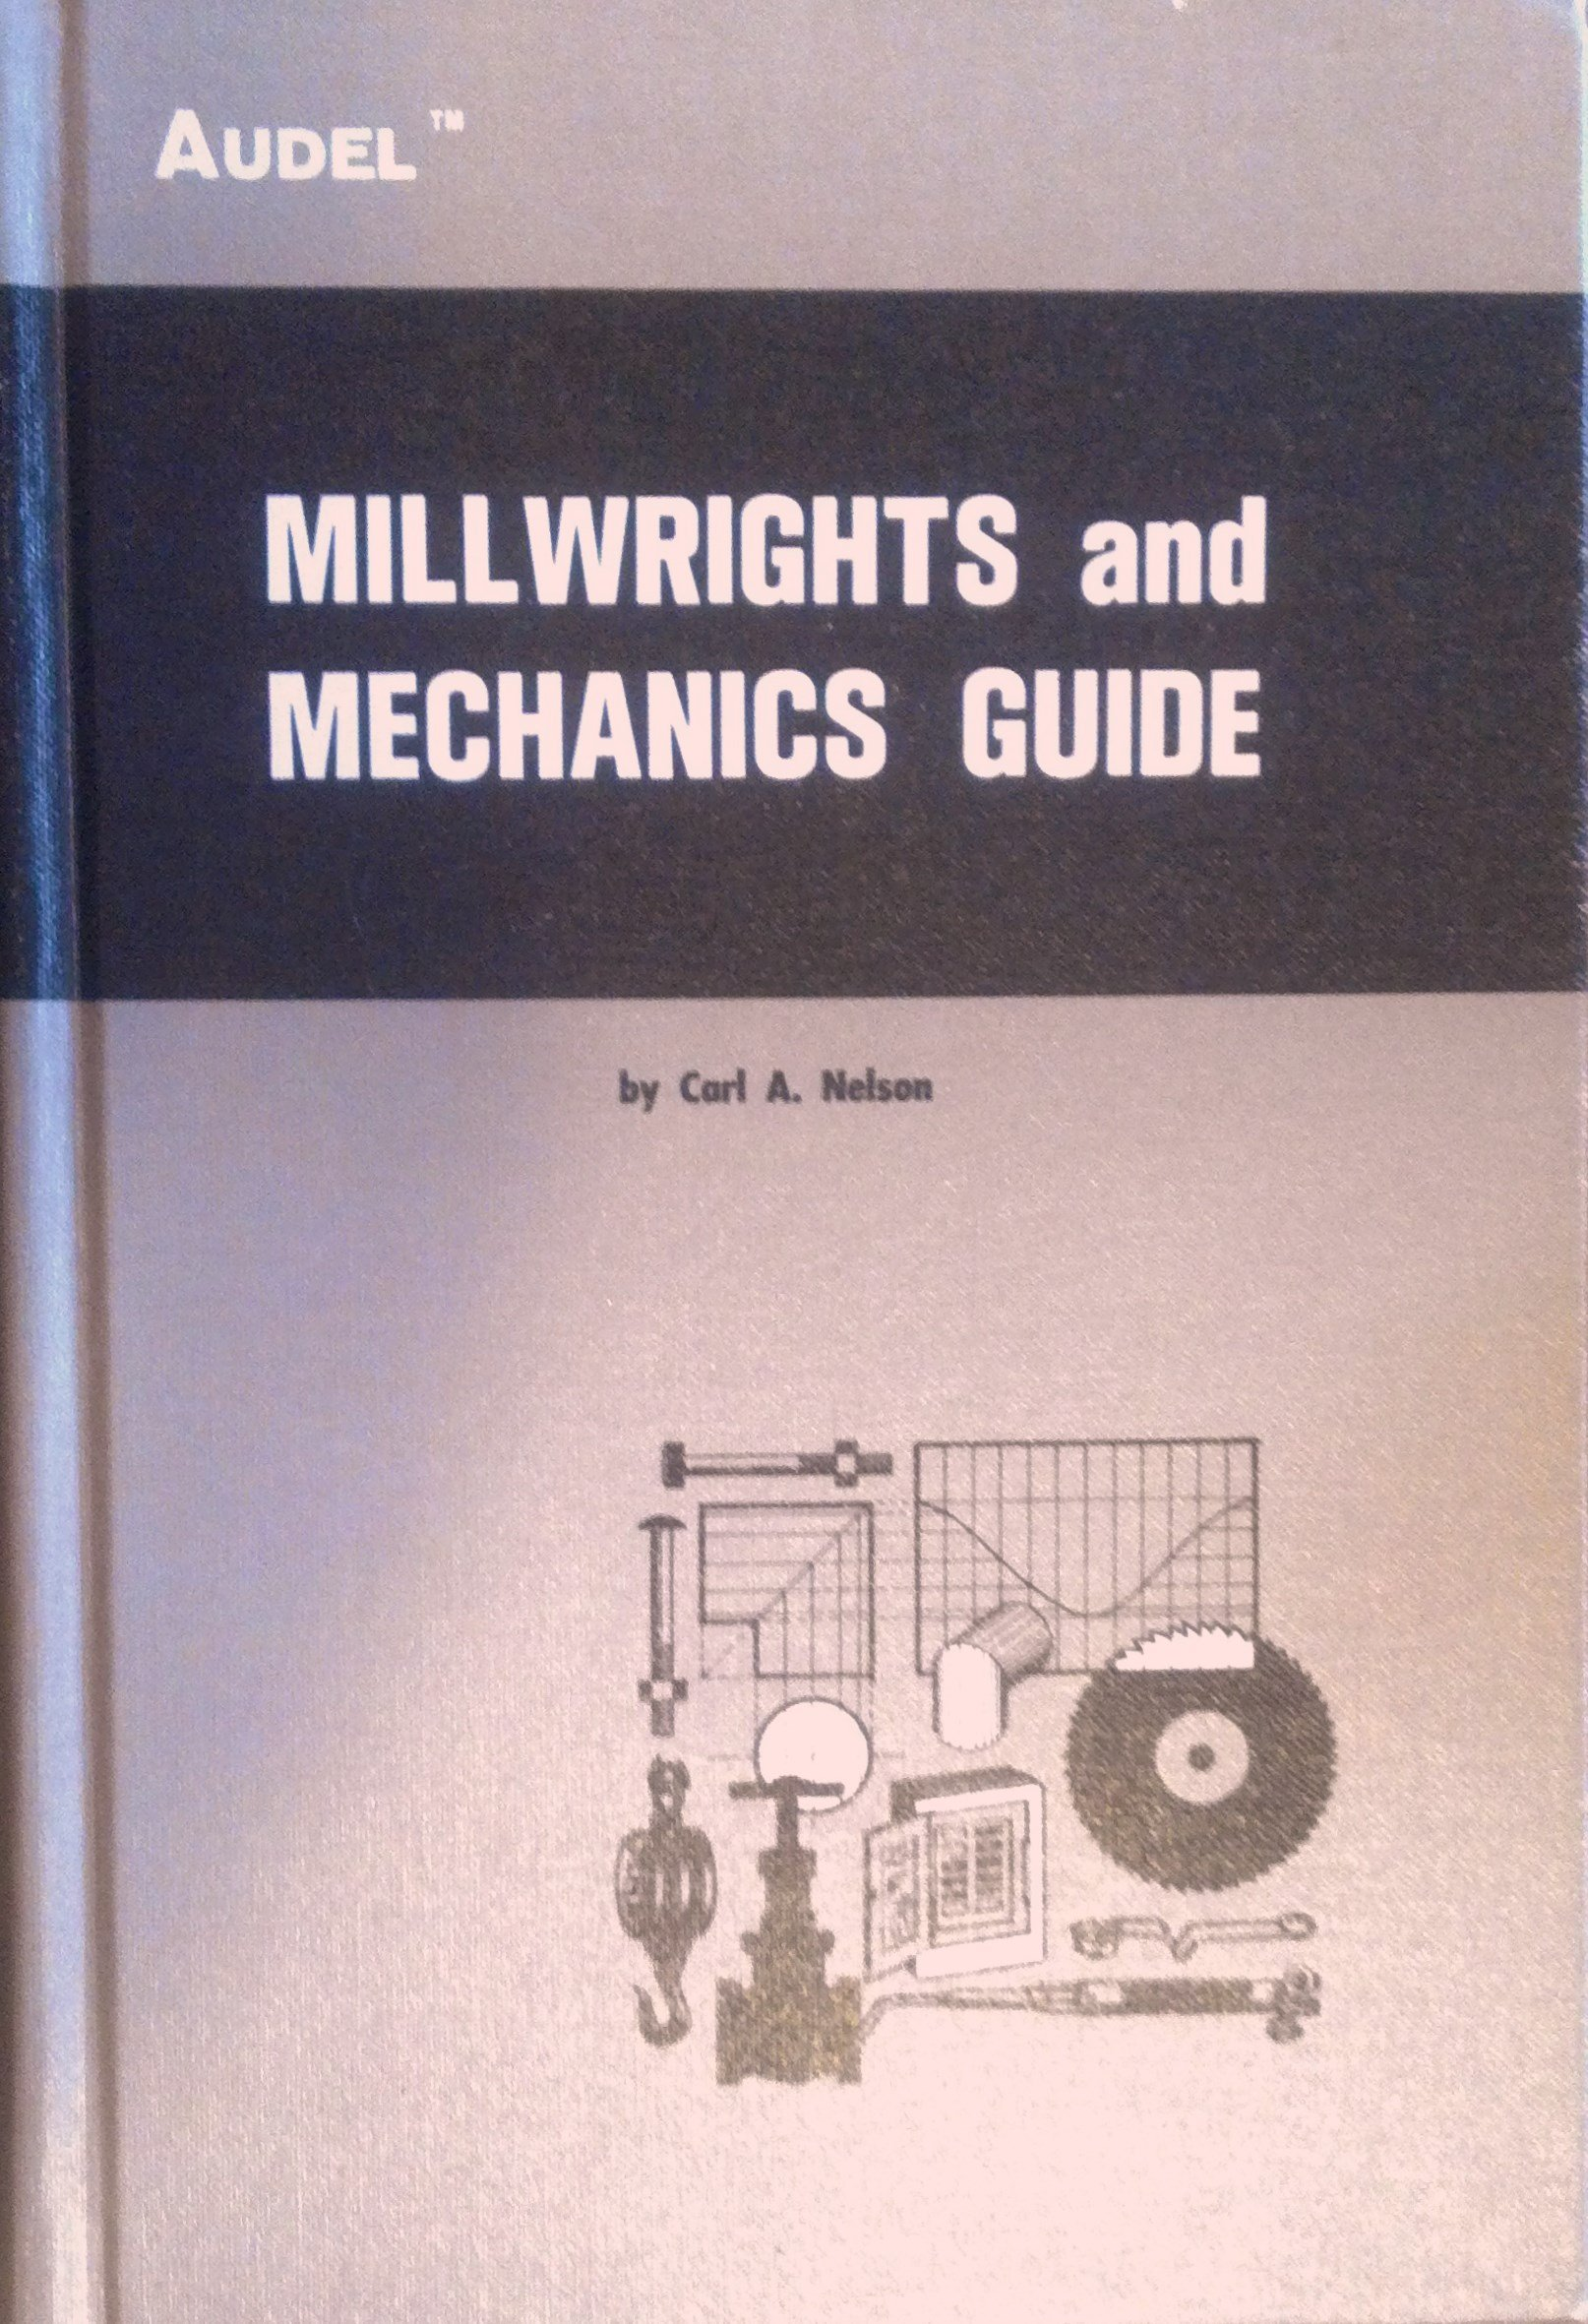 Millwrights and Mechanics Guide-Second Edition: Carl A. Nelson: Amazon.com:  Books